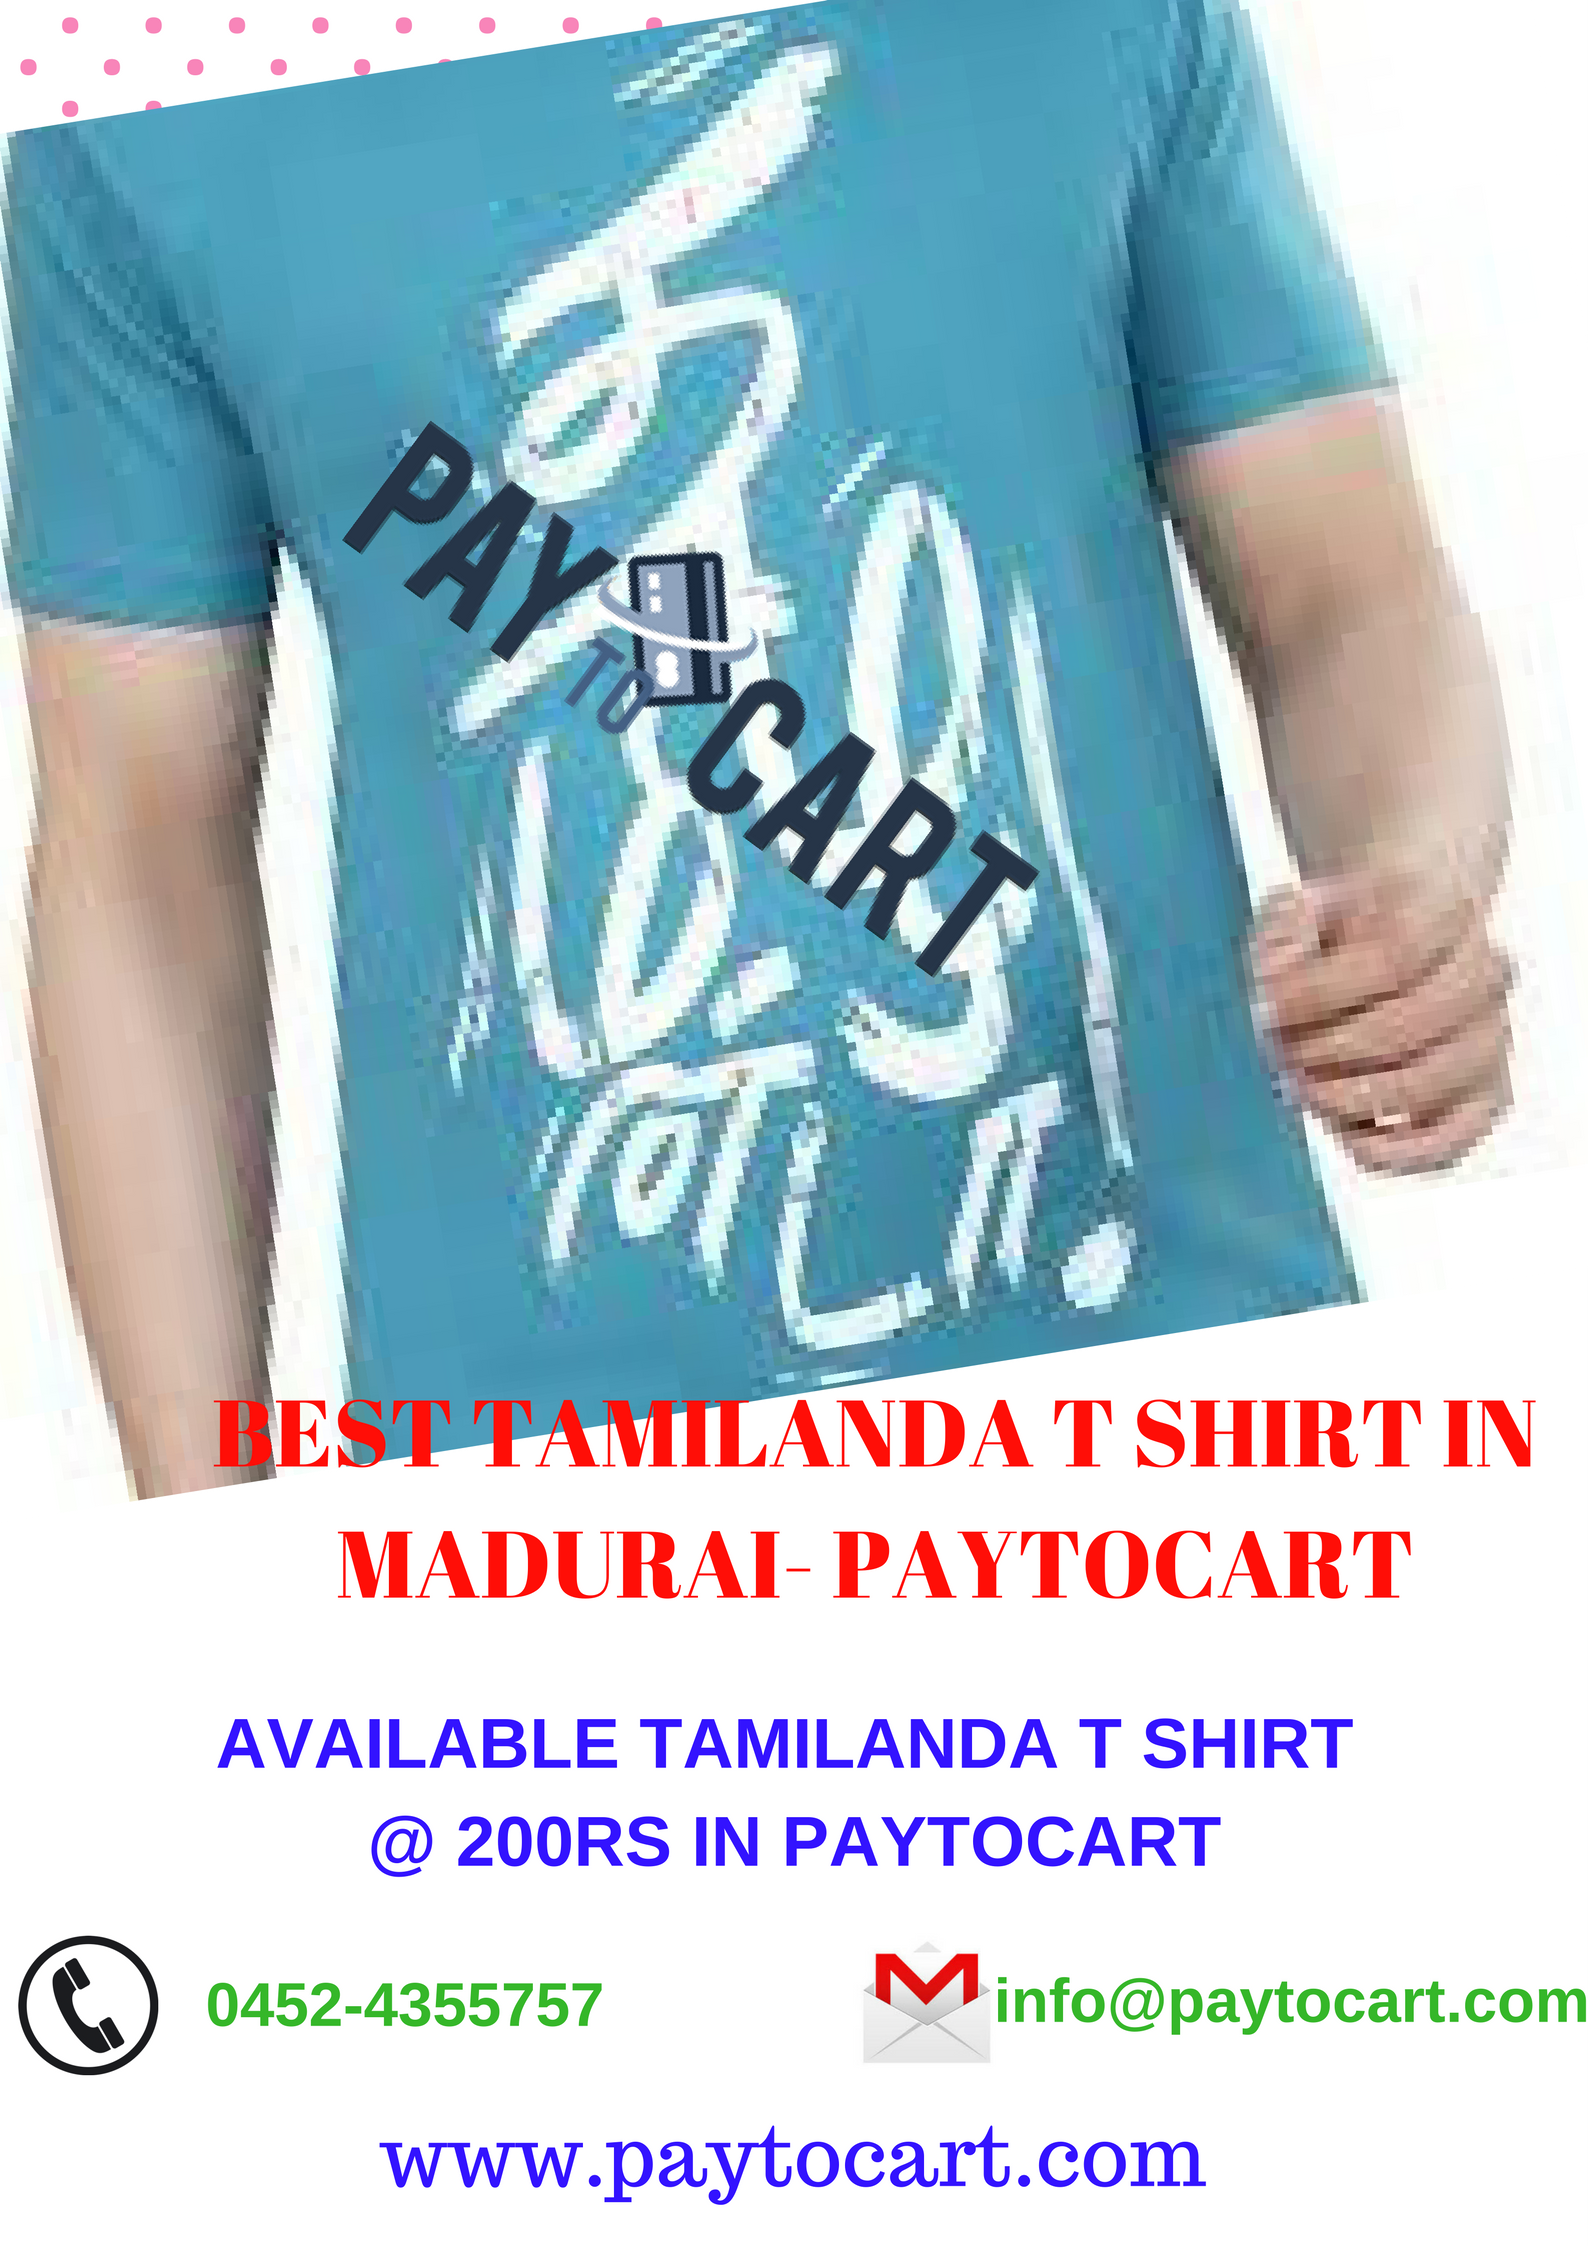 PAYTOCART is one of the best tamilanda printed t shirts online shopping in Madurai, which has the huge collection of tamilanda t shirts @250Rs